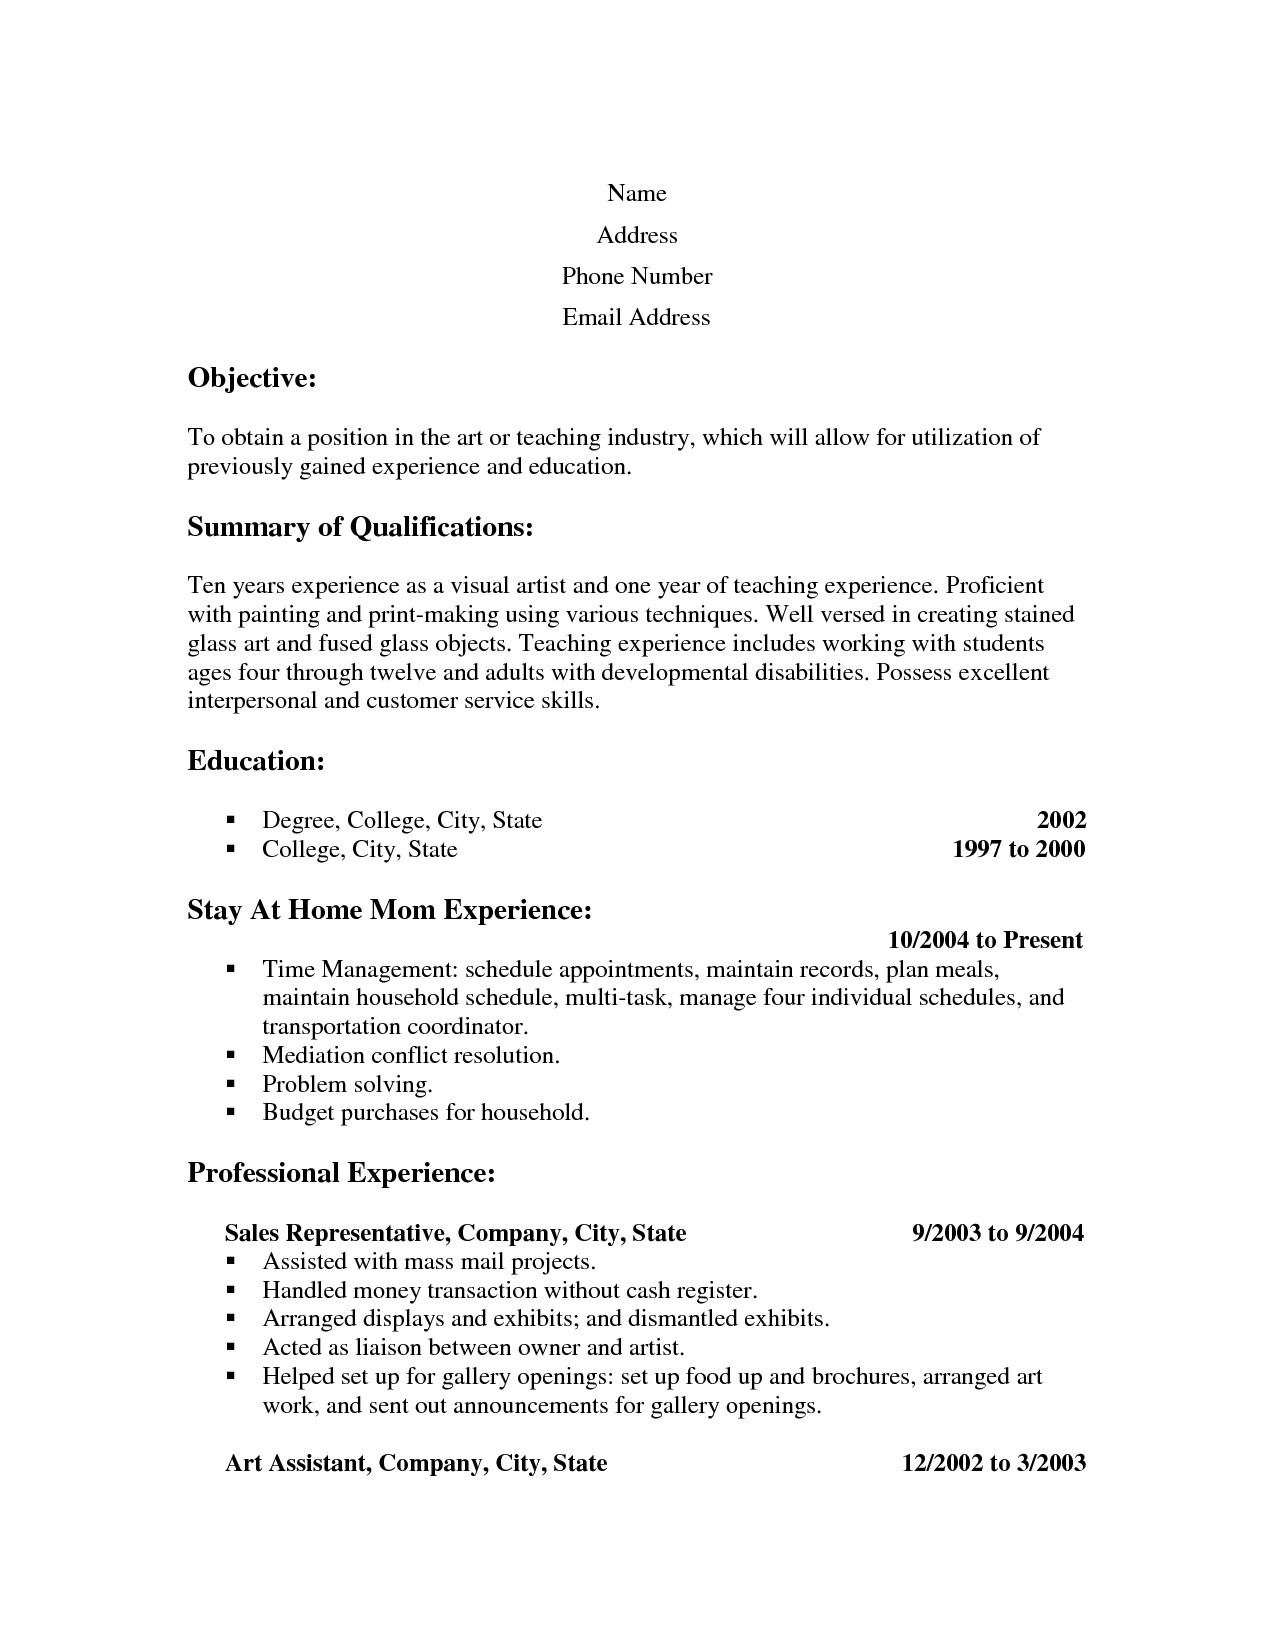 Stay at Home Mom Job Description for Resume - Example Stay at Home Mom Resume Sample Pdf Sample Resume Cover